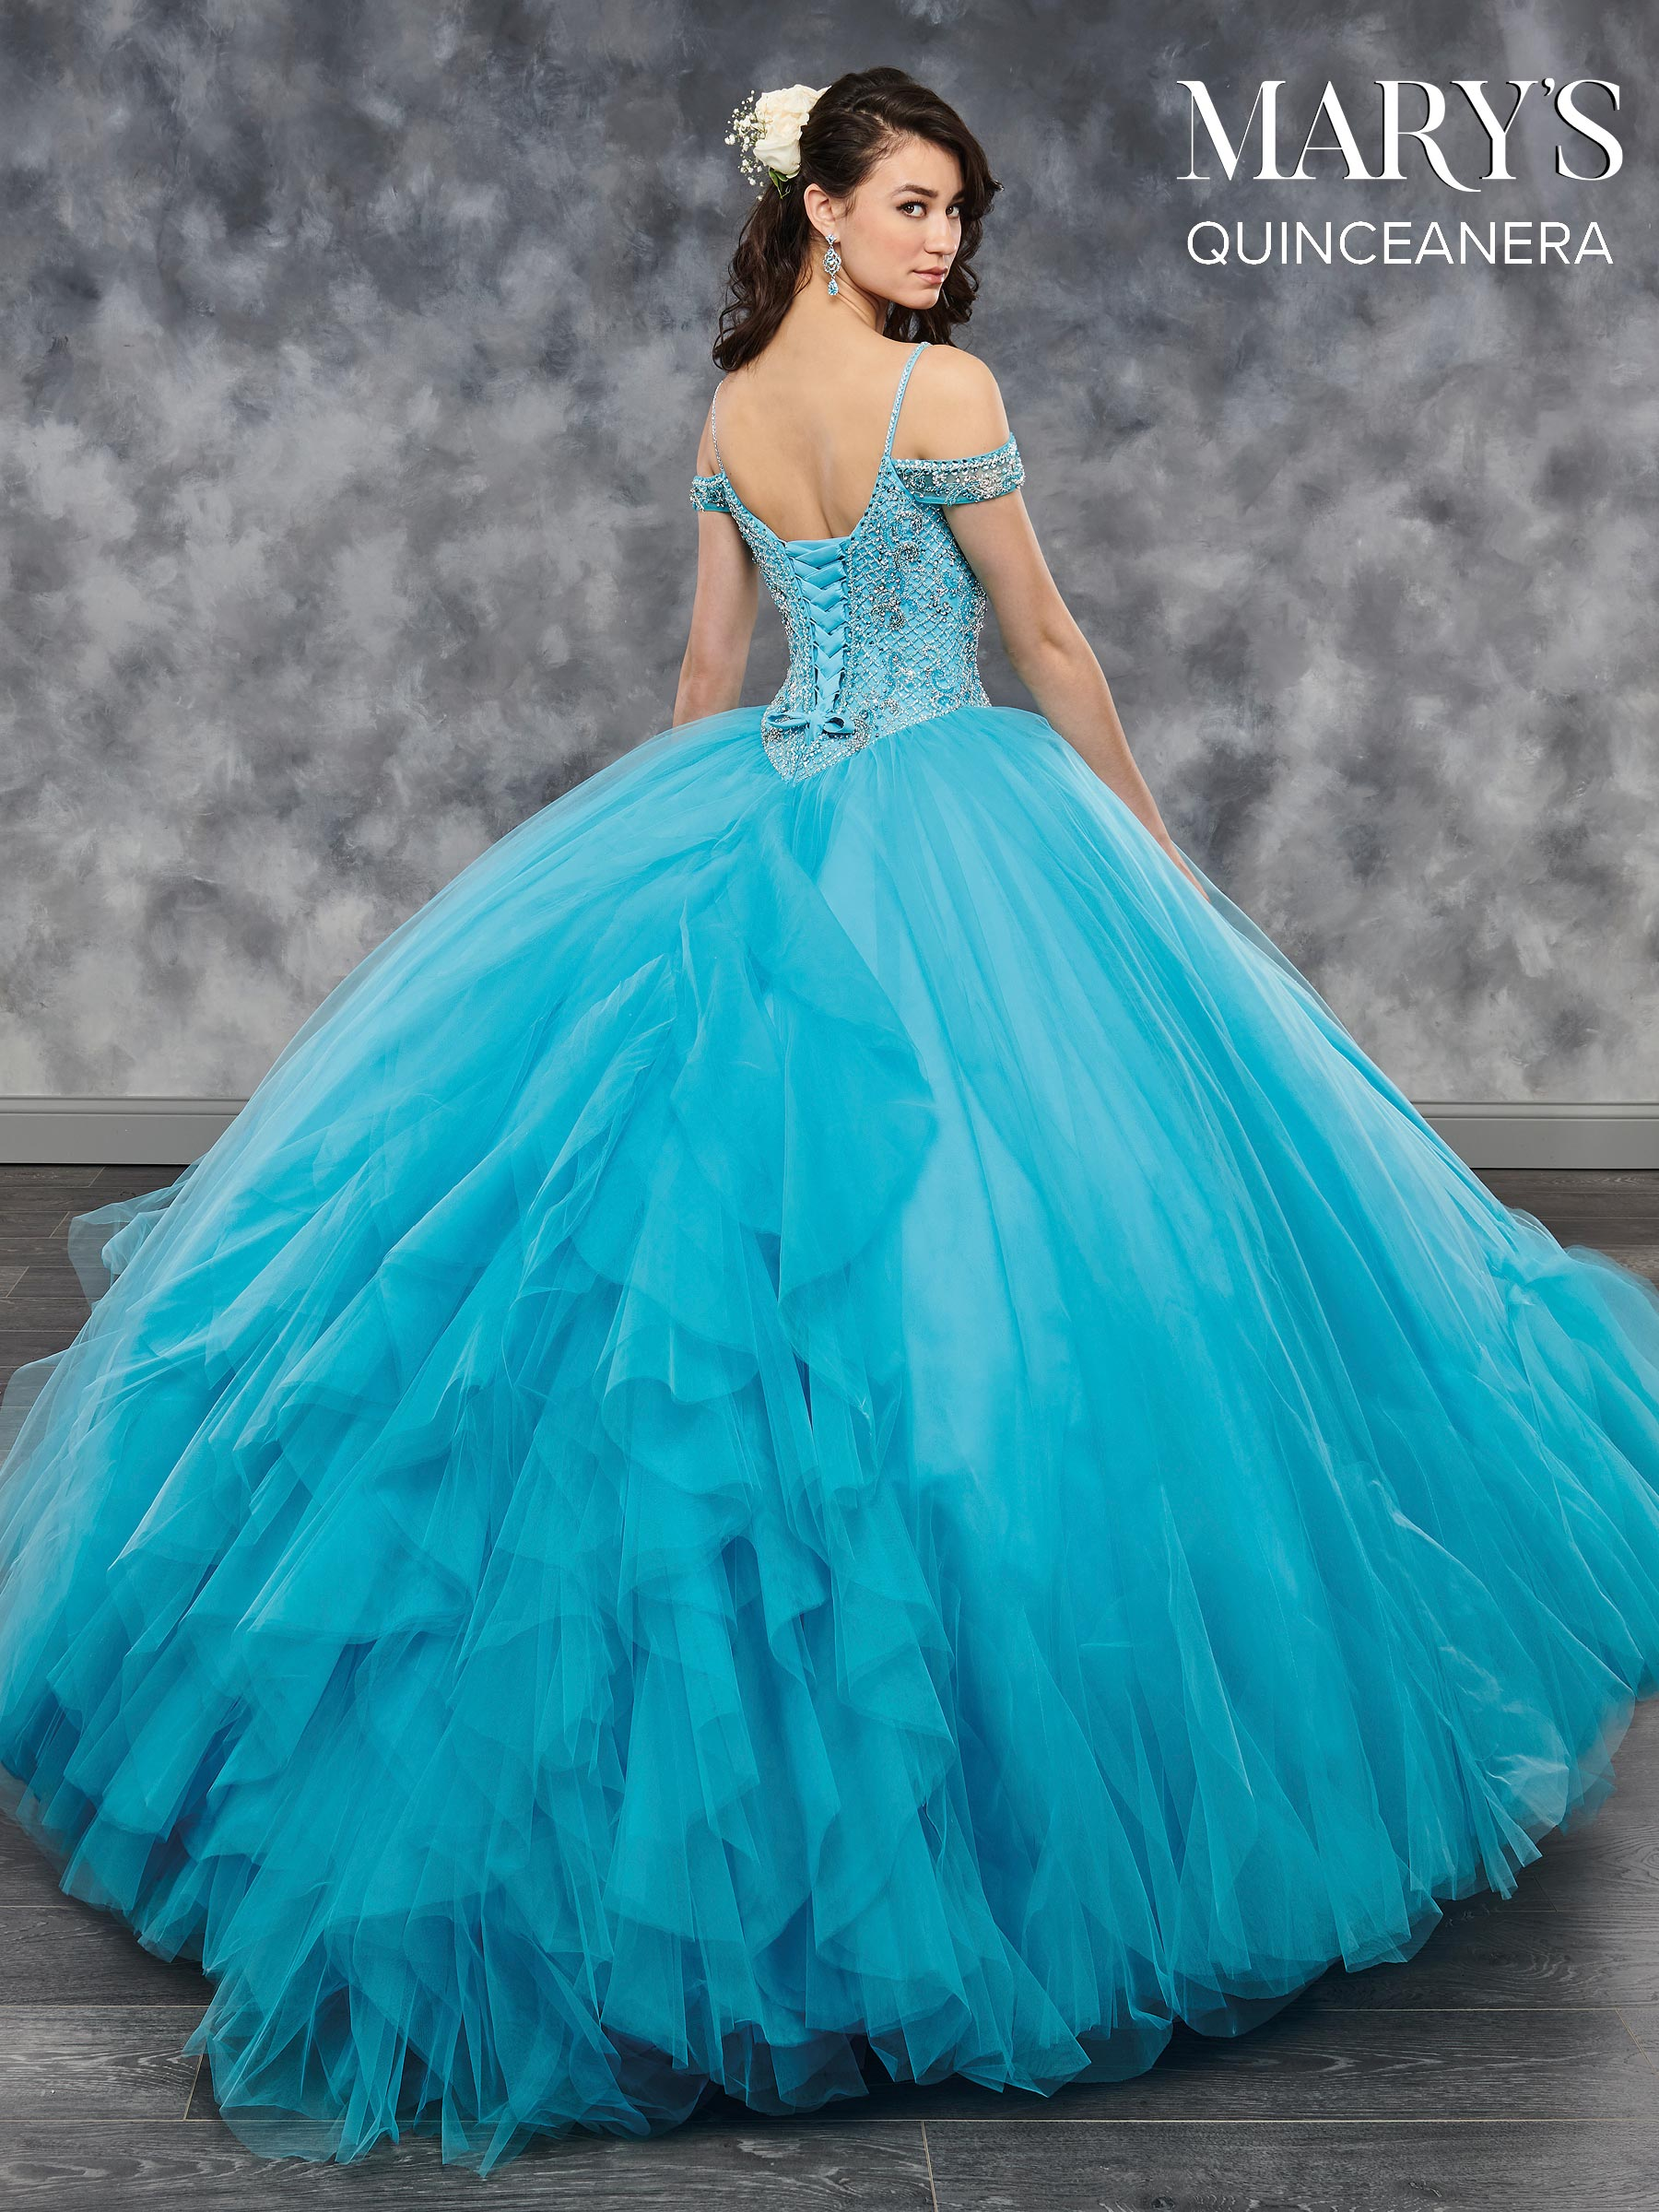 Marys Quinceanera Dresses | Mary's Quinceanera | Style - MQ2041